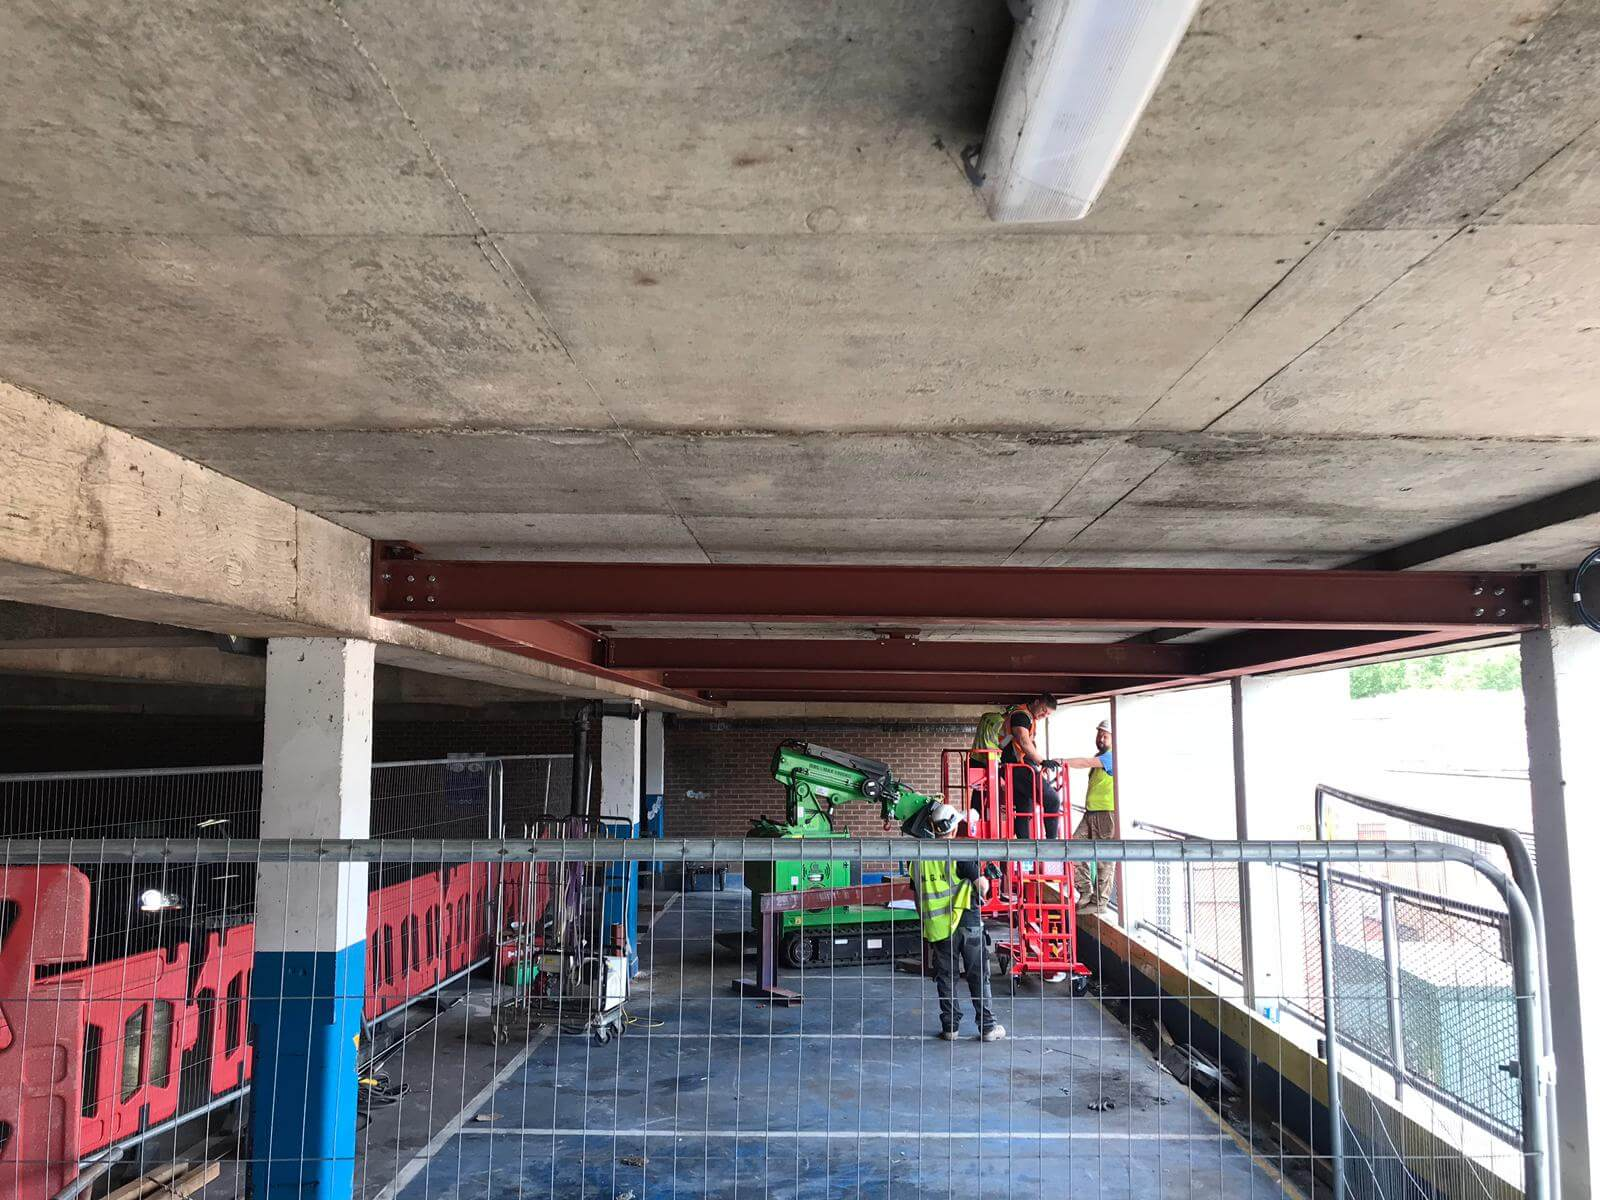 Hooka on hire installing steel I-beams in Gloucester, lift and carry crawler crane restricted access multi-story car park